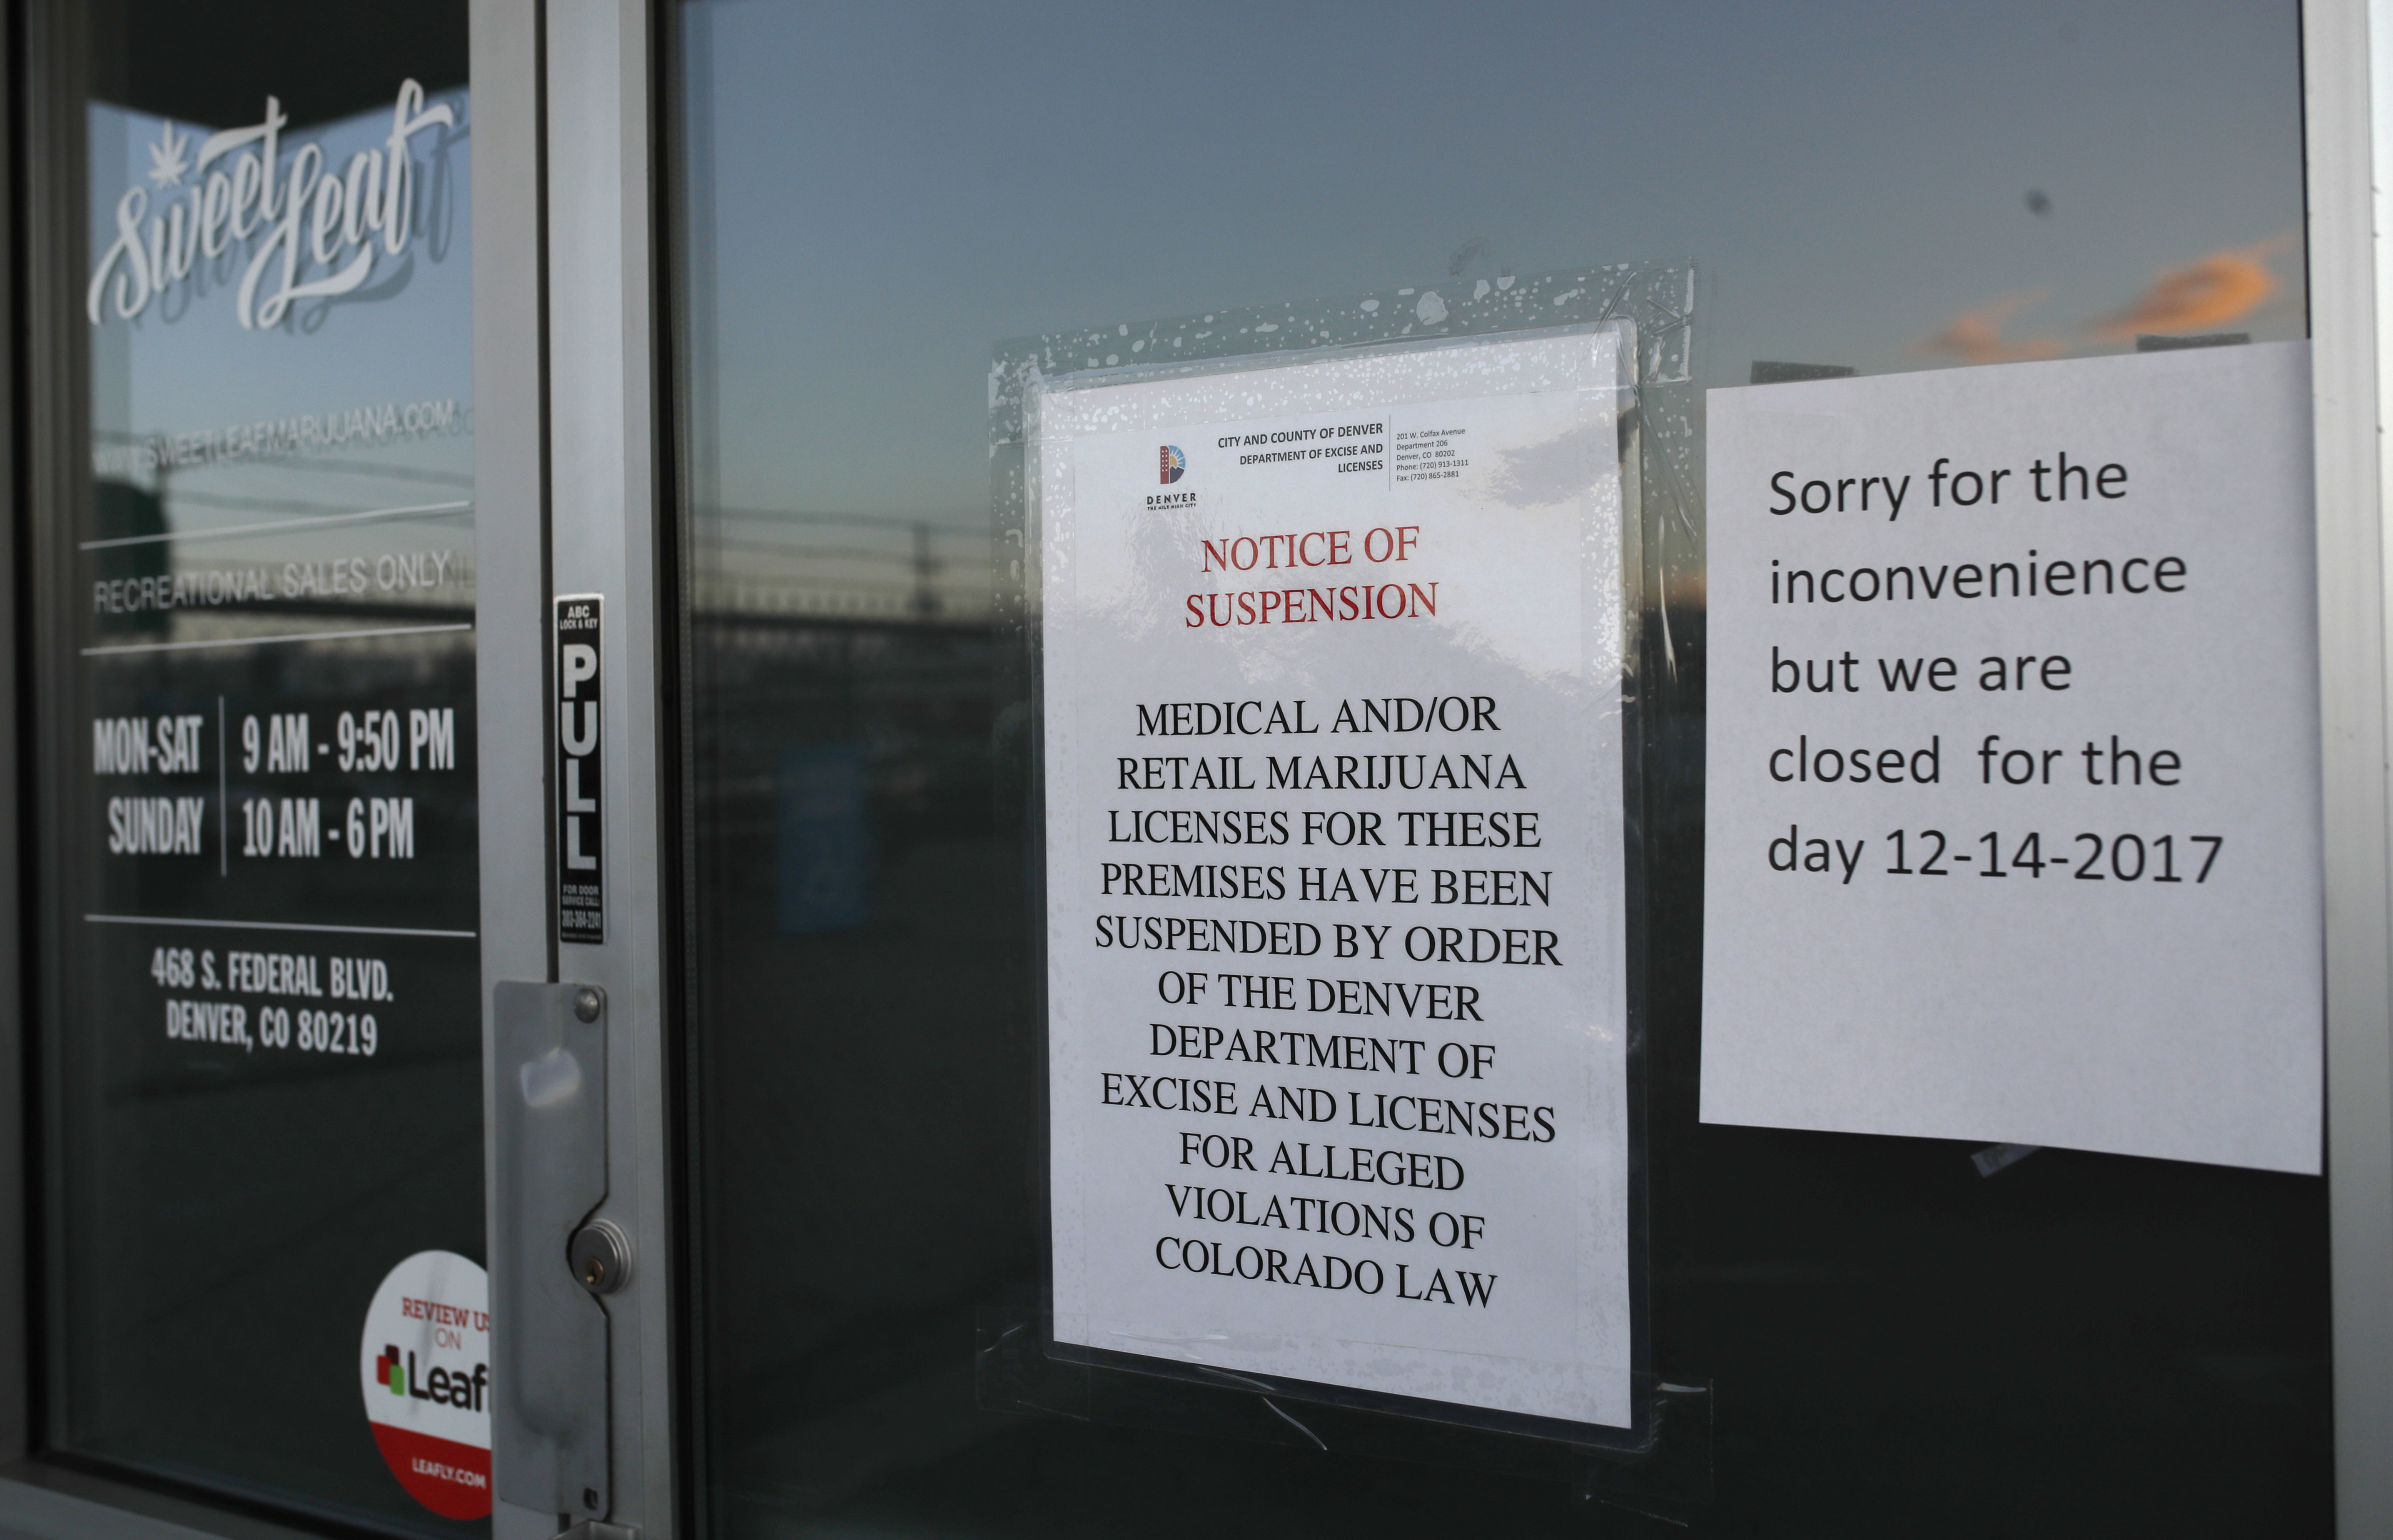 FILE - In this Dec. 14, 2017 file photo closed signs are displayed on the front door to a marijuana dispensary along South Federal Boulevard in south Denver. The owners of the Denver marijuana business pleaded guilty Friday, Jan. 25, 2019 to drug and racketeering charges stemming from a yearlong grand jury investigation that prosecutors say uncovered more than two tons of marijuana entering the black market.(AP Photo/David Zalubowski,File)